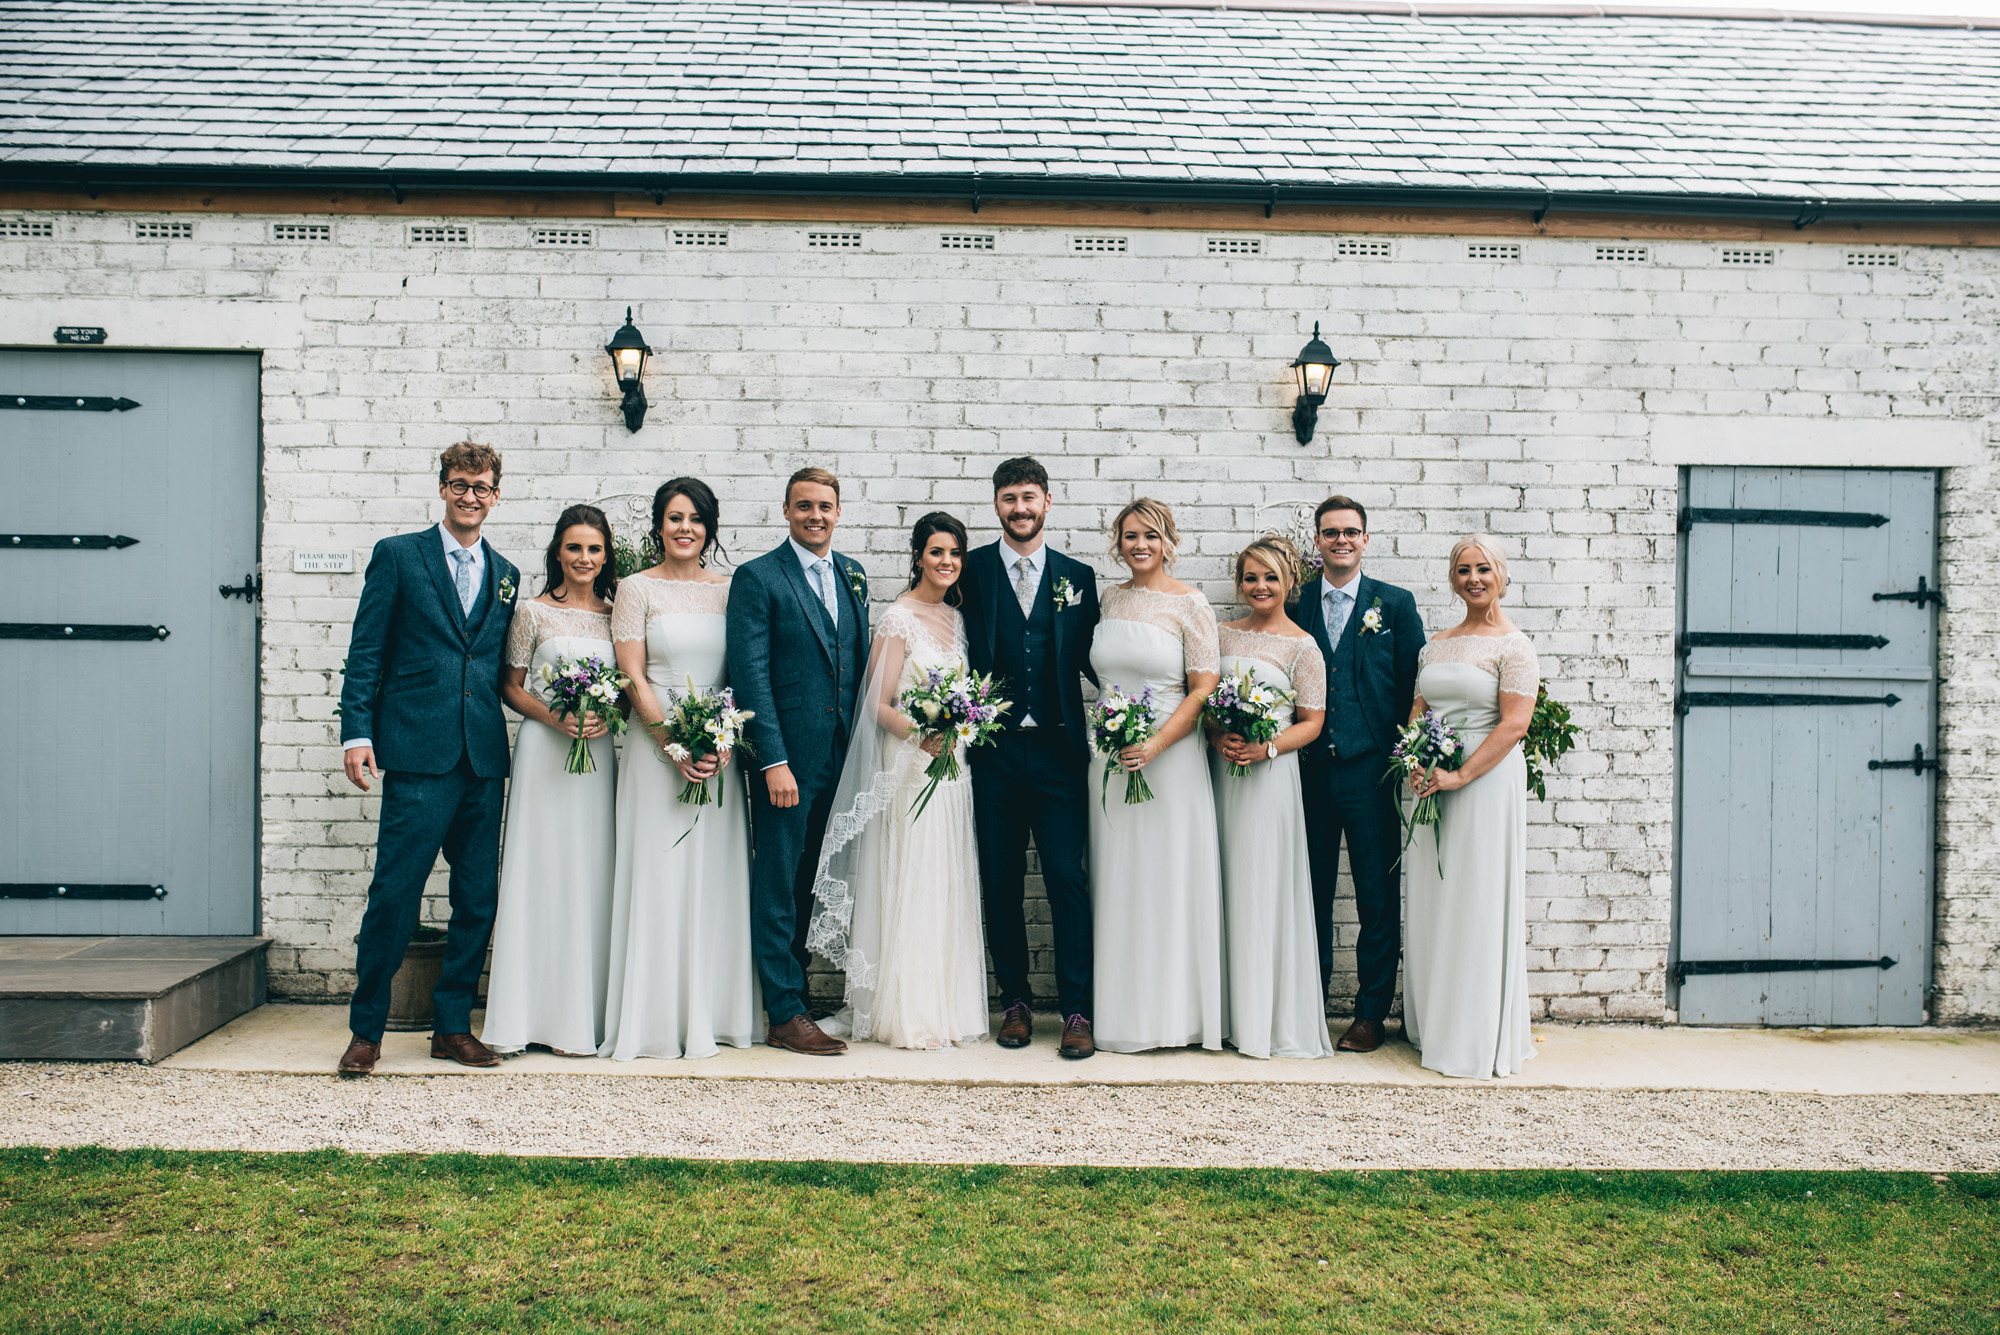 Kate-Beaumont-Sheffield-Lucy-Bohemian-Lace-Dress-Barn-Wedding-Cumbria-28.jpg